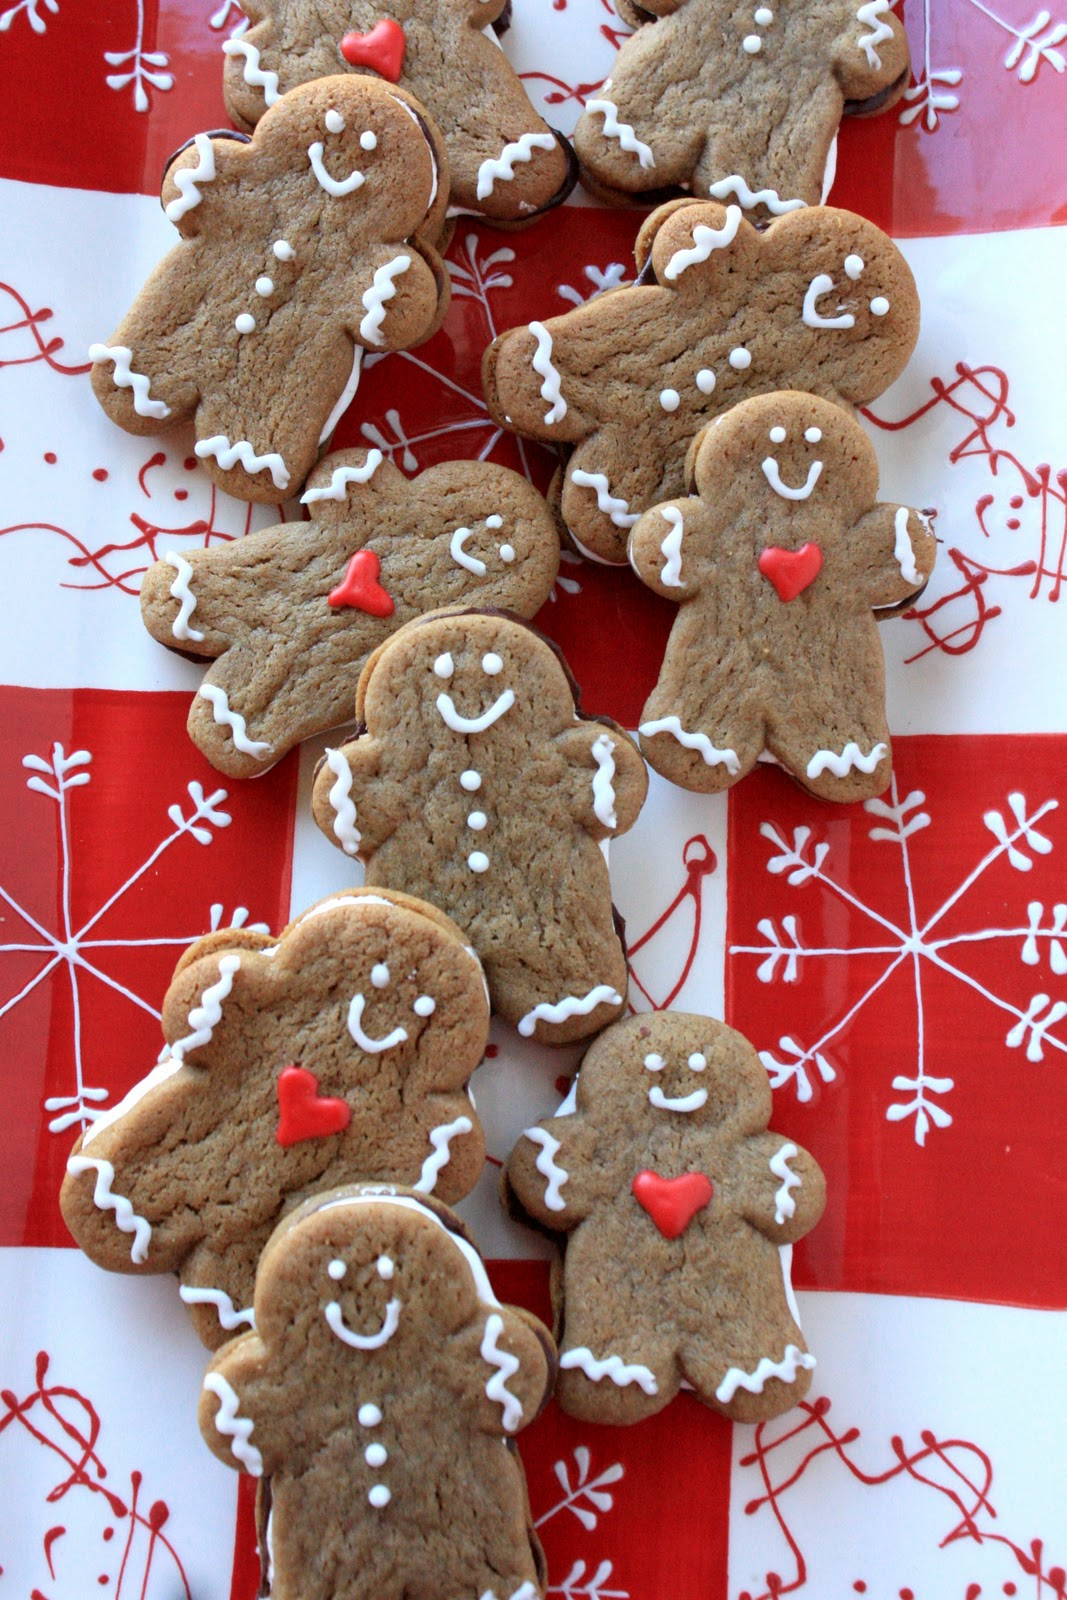 This is a picture of Priceless Gingerbread Men Image